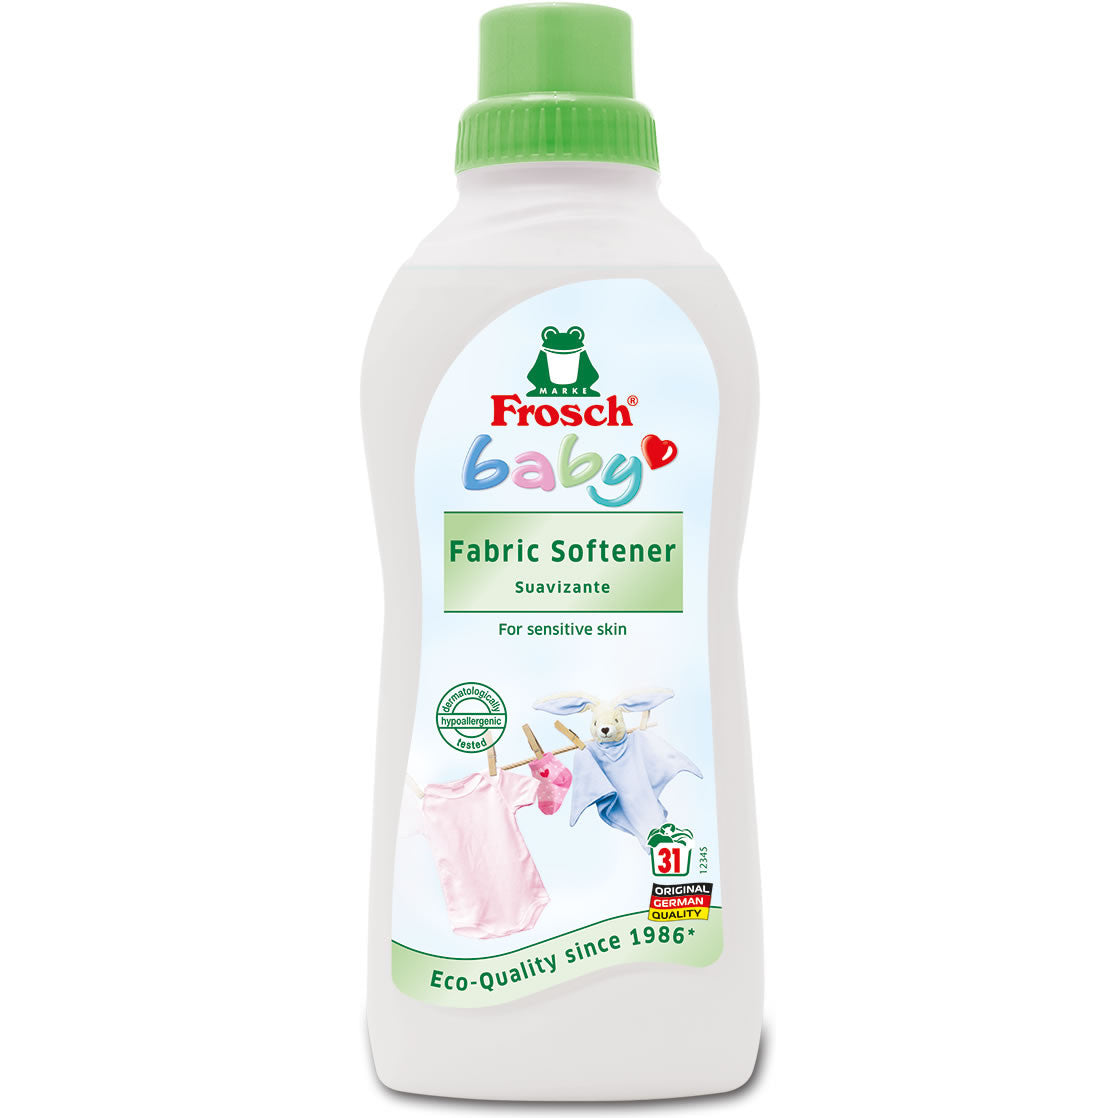 What Can I Use As A Natural Fabric Softener